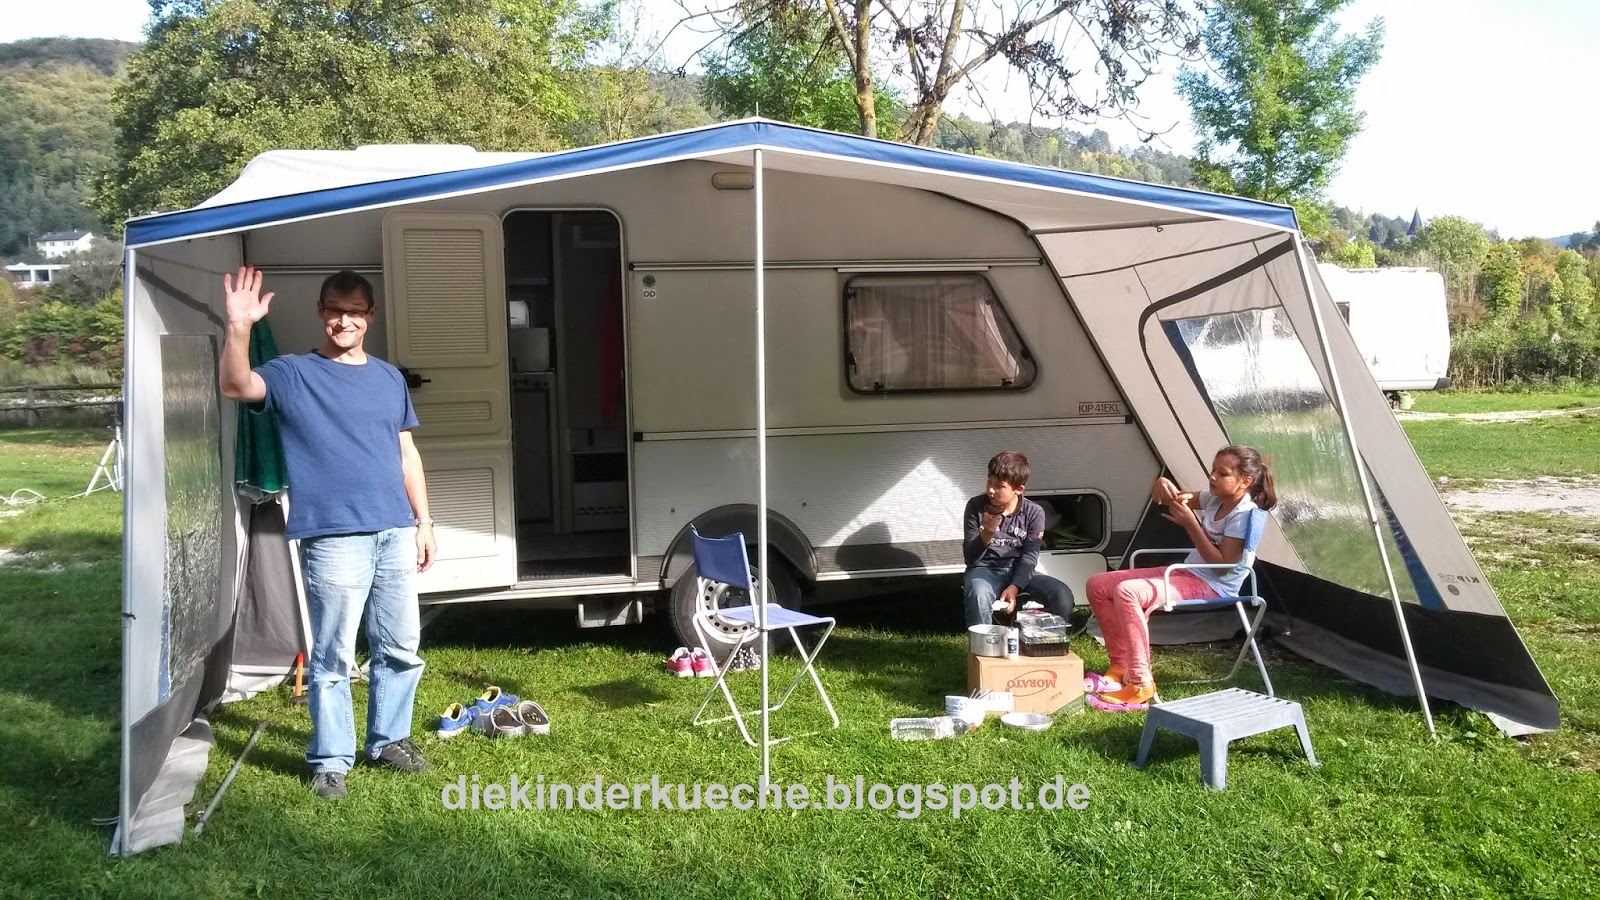 Outdoor Küche T5 Outdoor Küche Camper